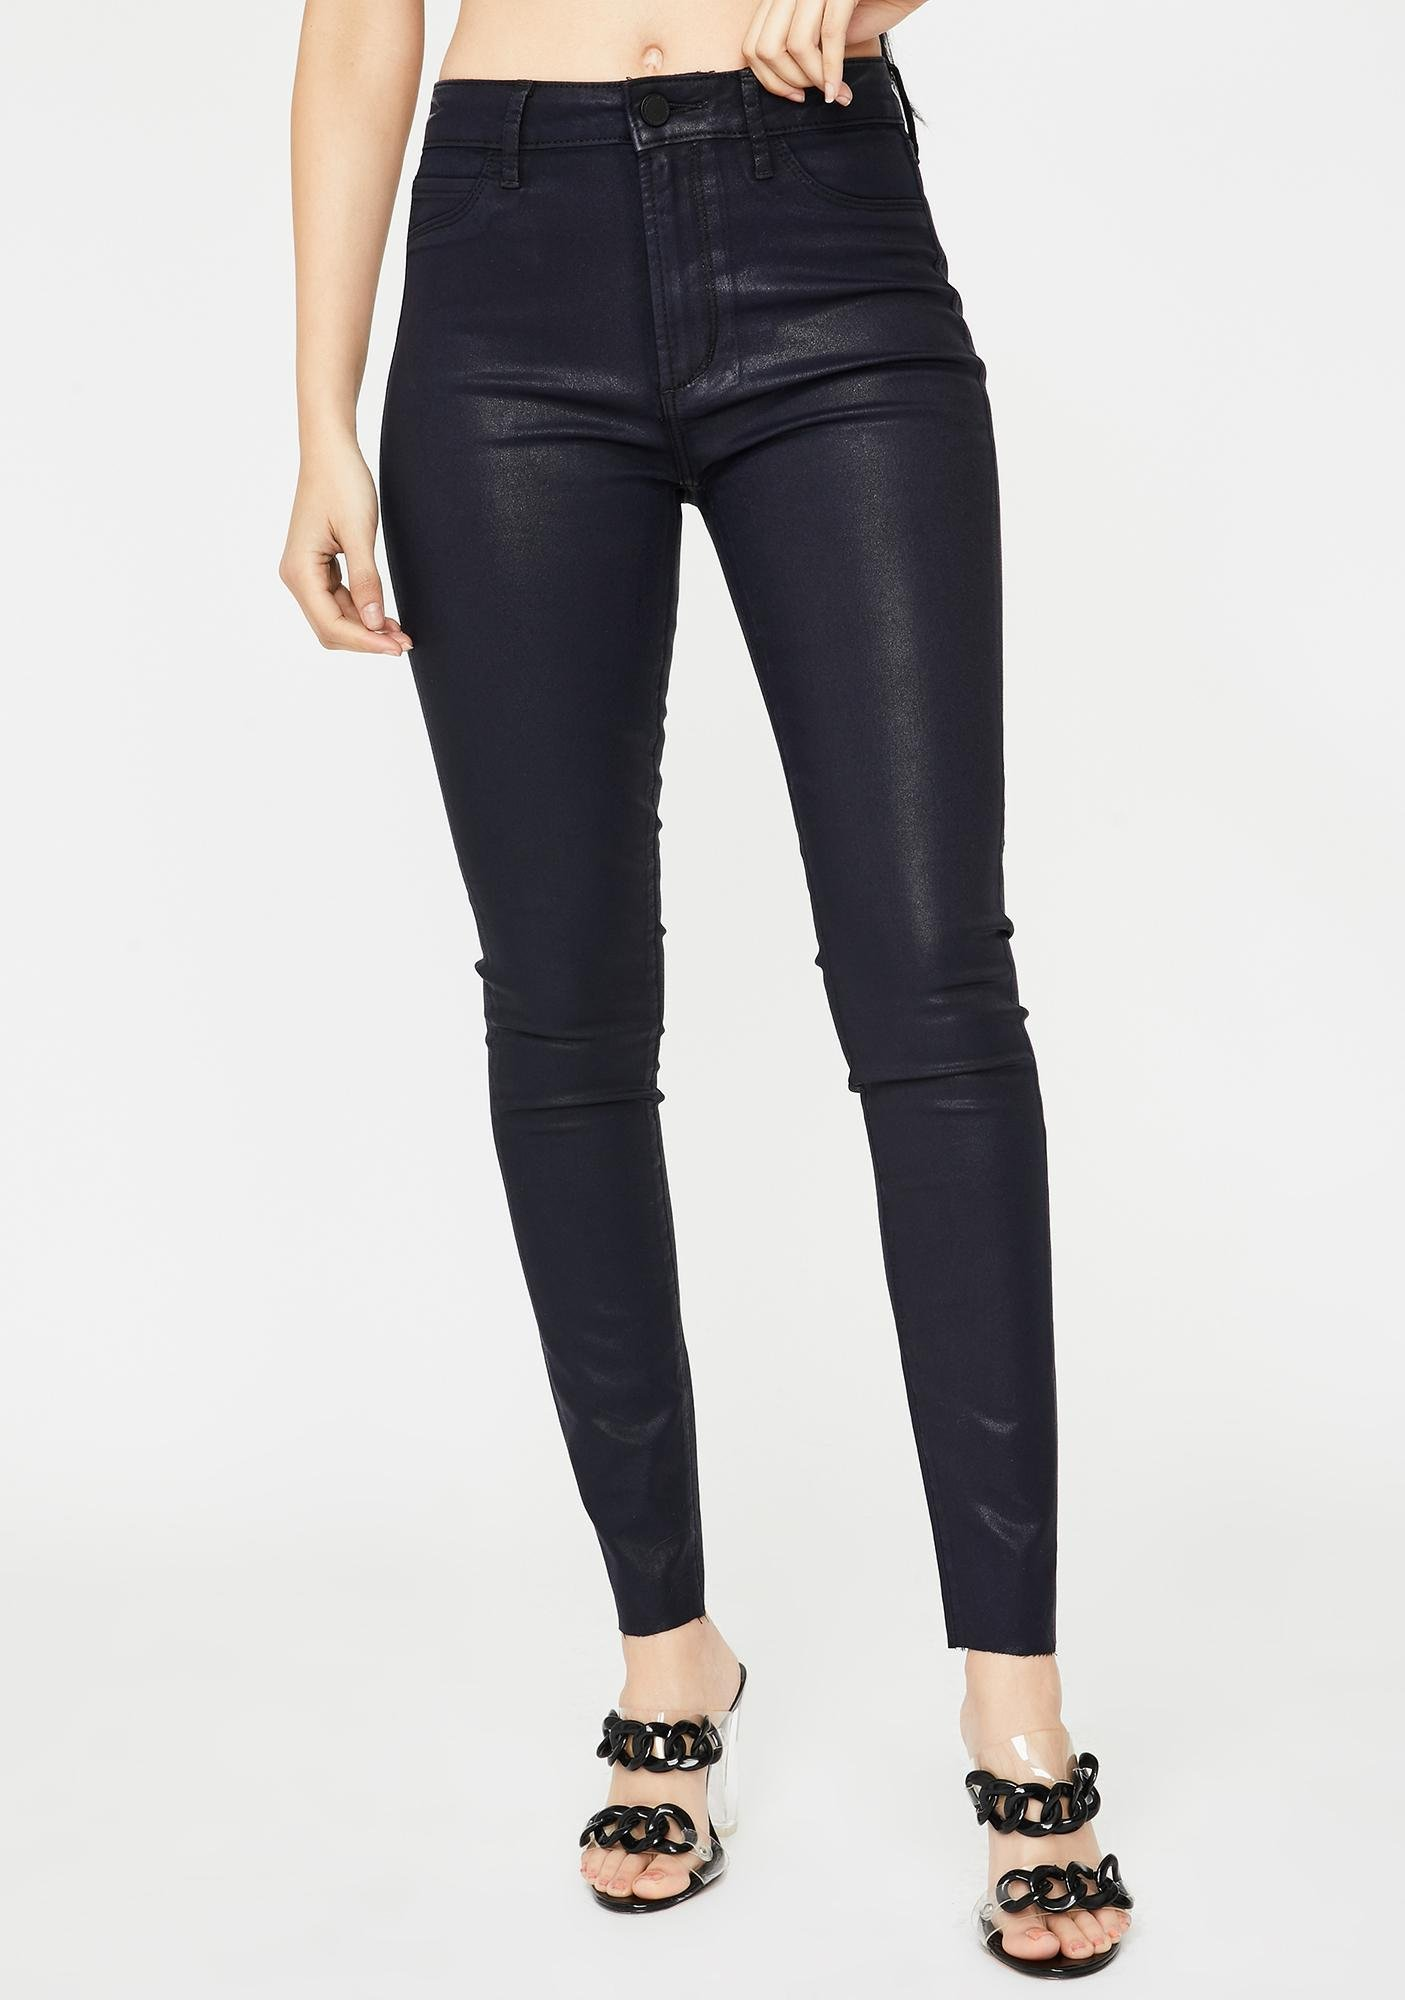 Articles of Society Marcy Hilary High Rise Pants